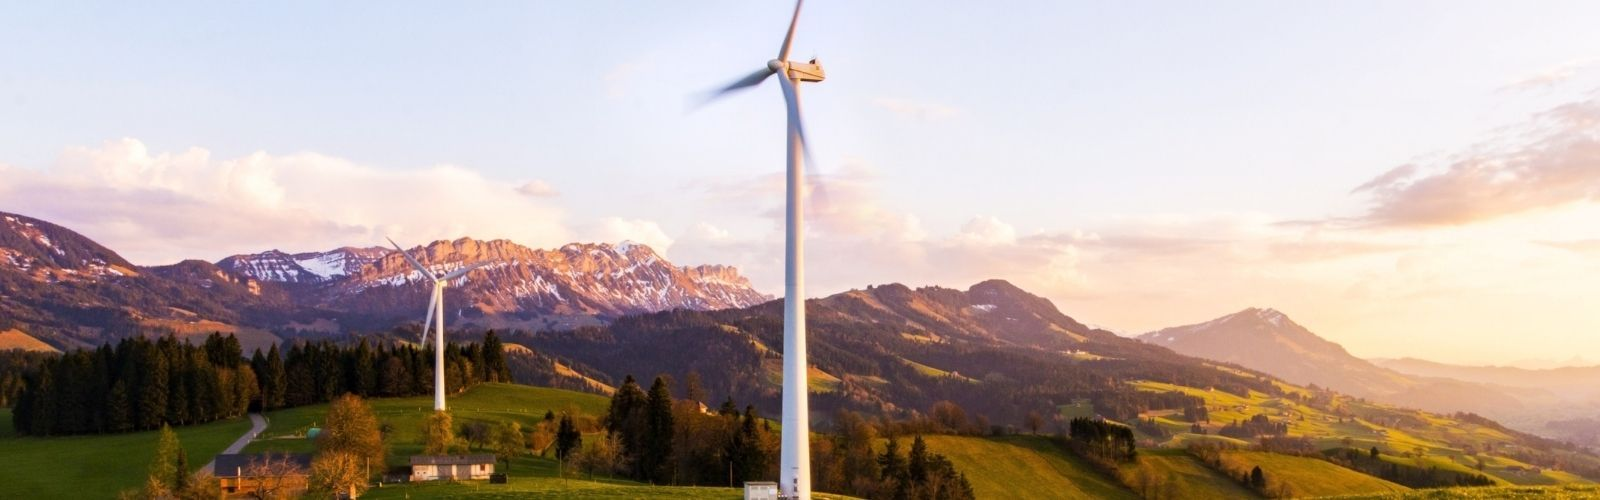 Mountain scape at sunset with modern white windmills, symbolizing clean energy and ESG